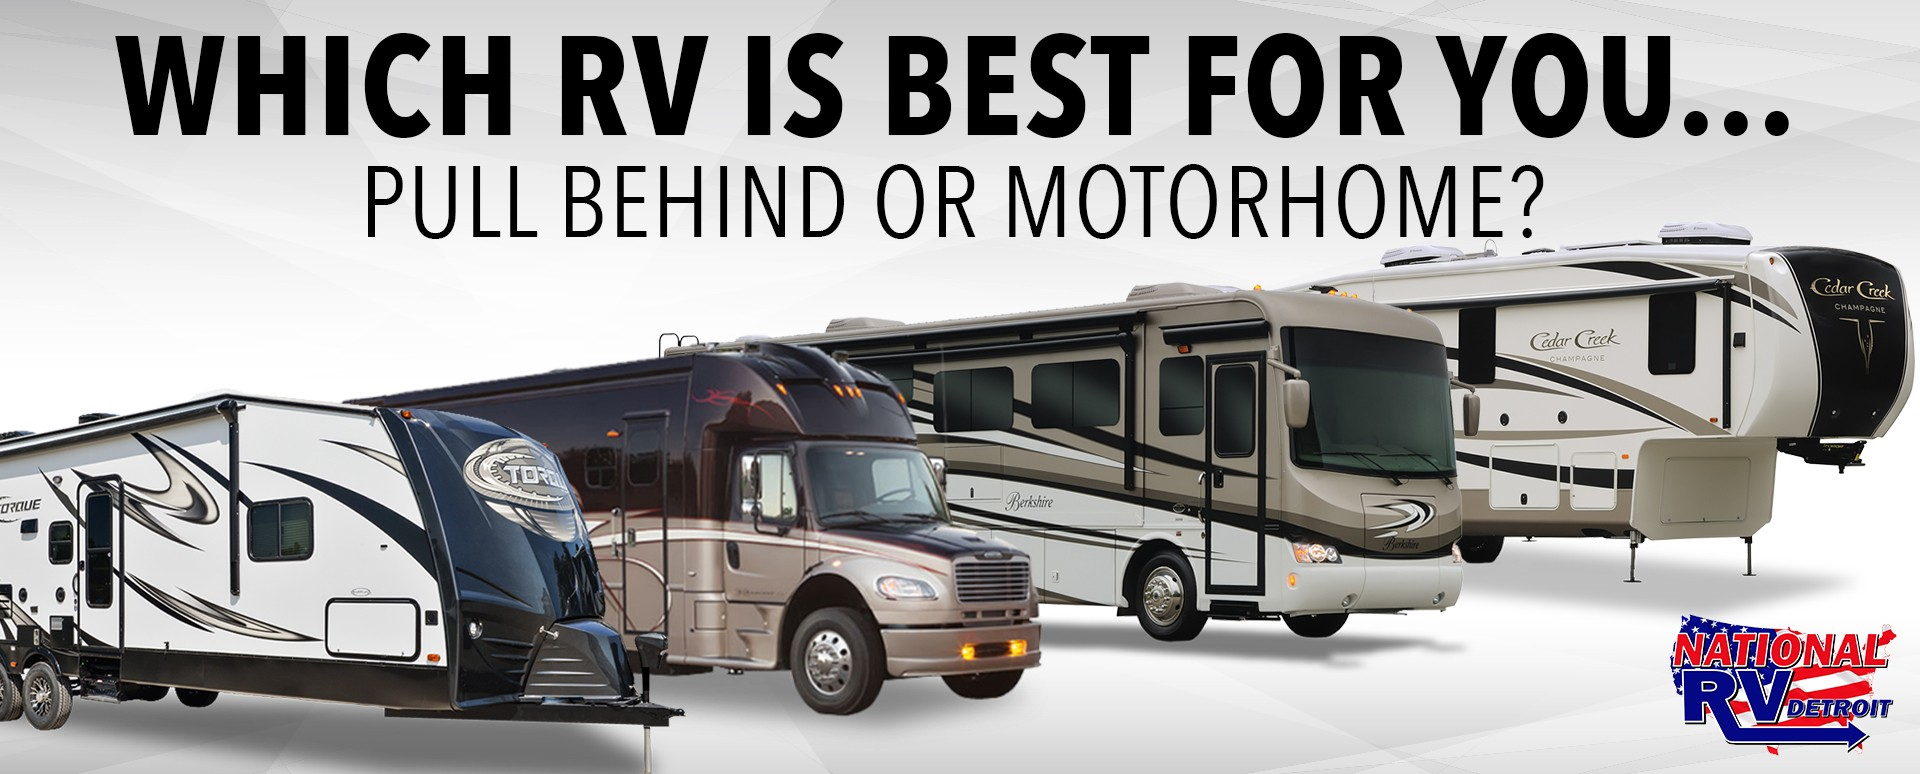 which rv is better for you